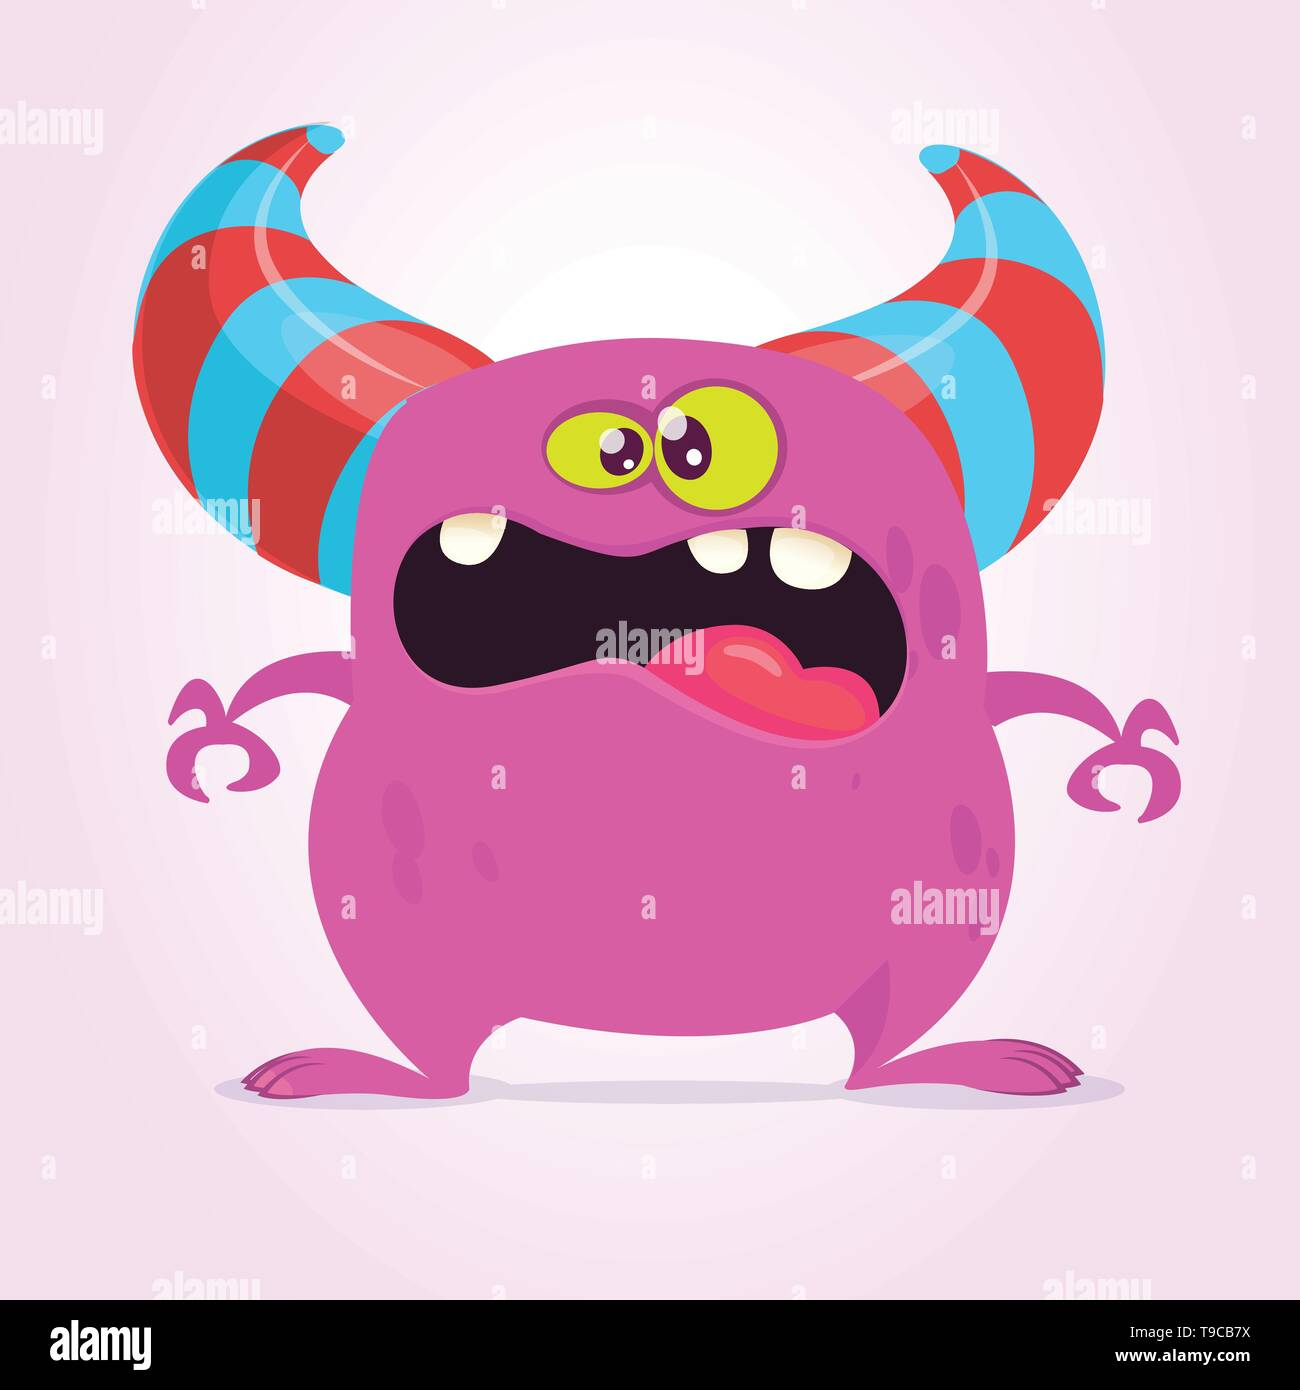 Cool cartoon monster with horns. Vector pink  monster illustration. Halloween design - Stock Image